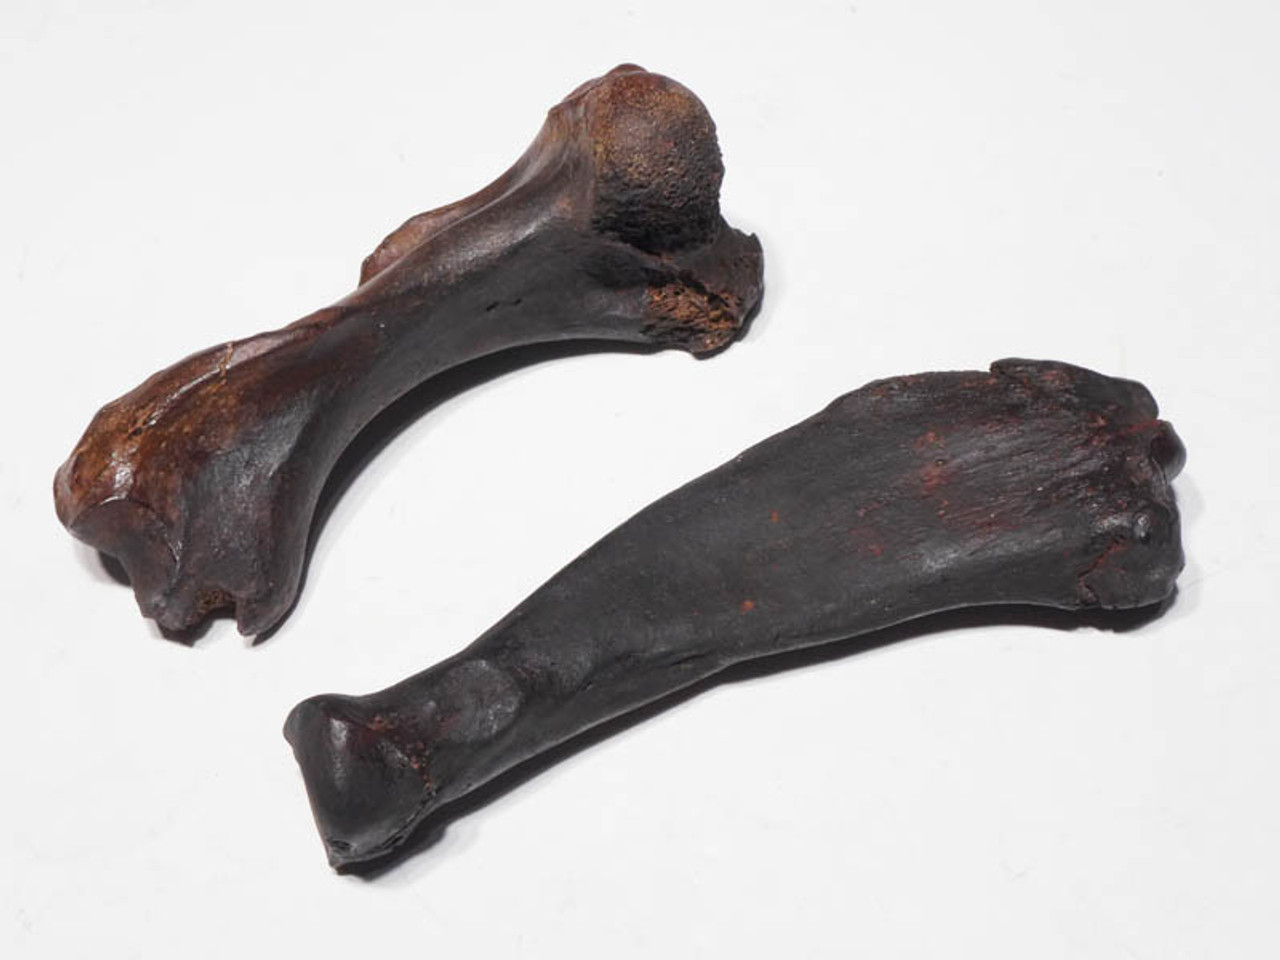 TWO COMPLETE PREHISTORIC SEAL LIMB BONES FROM THE SOUTHEAST UNITED STATES *LMX089